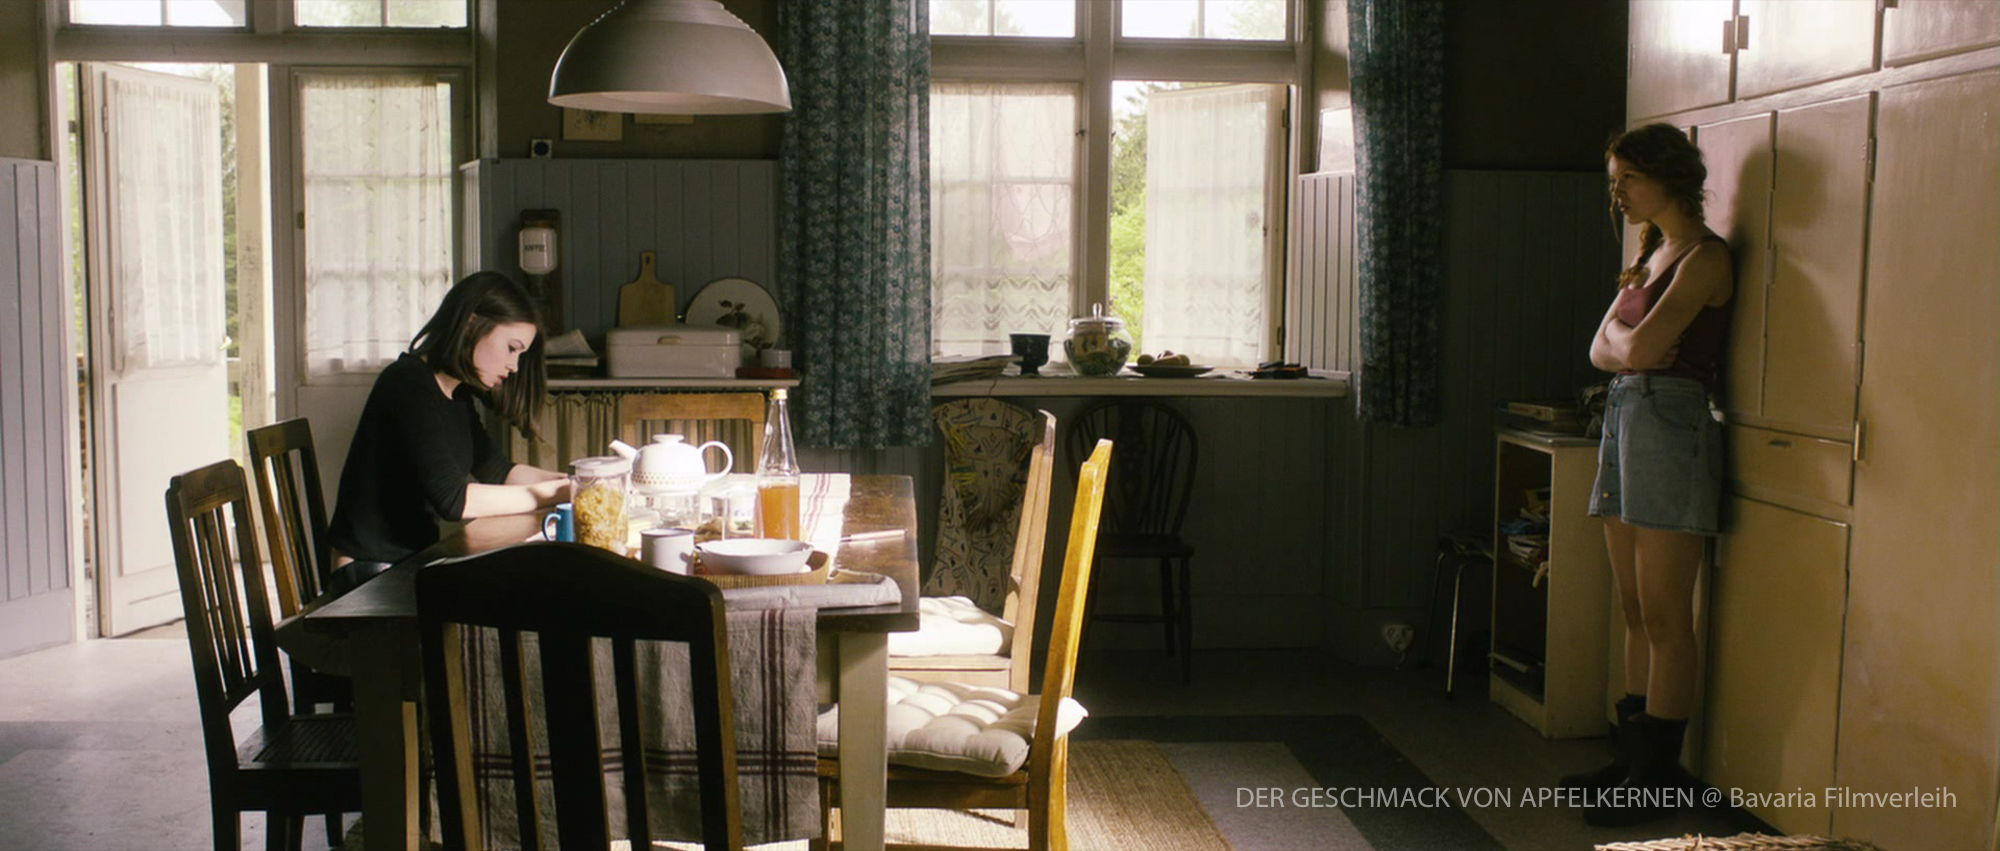 Der Geschmack von Apfelkernen Hanna Herzsprung Thomas Freudenthal Szenenbild Produktion Design  Artdirection  Filmsets Setdesigner Hamburg Production Design Szenenbild Germany Berlin